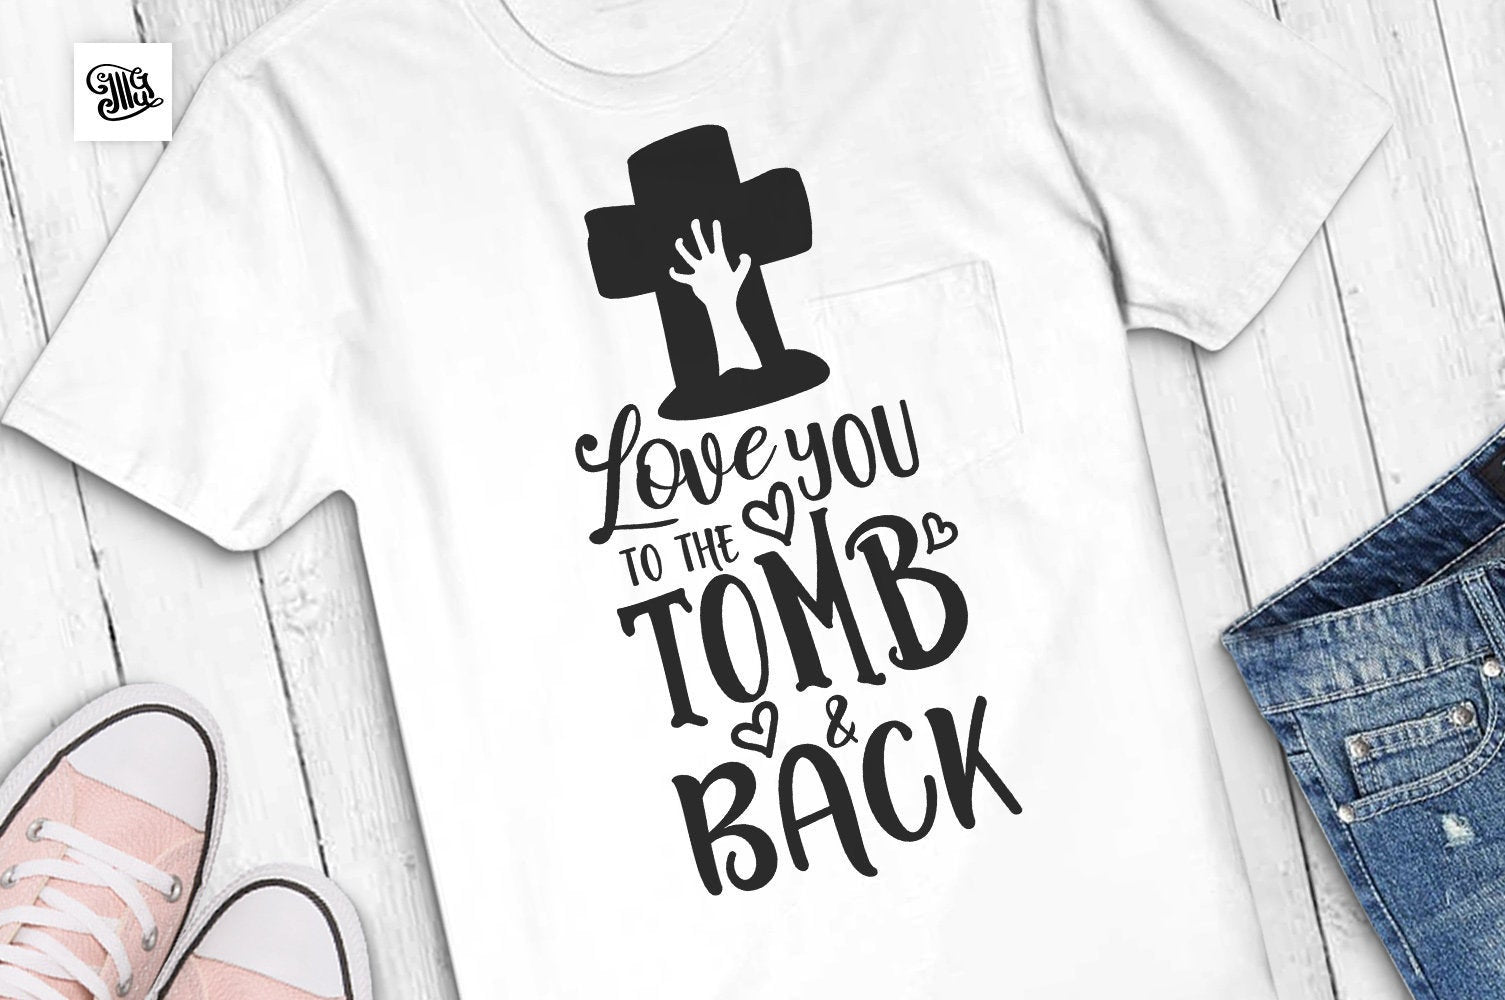 Love you to the tomb and back svg, halloween girl svg, halloween zombie svg, zombie hand svg, halloween svg, girl svg file,girl cut file-by Illustrator Guru